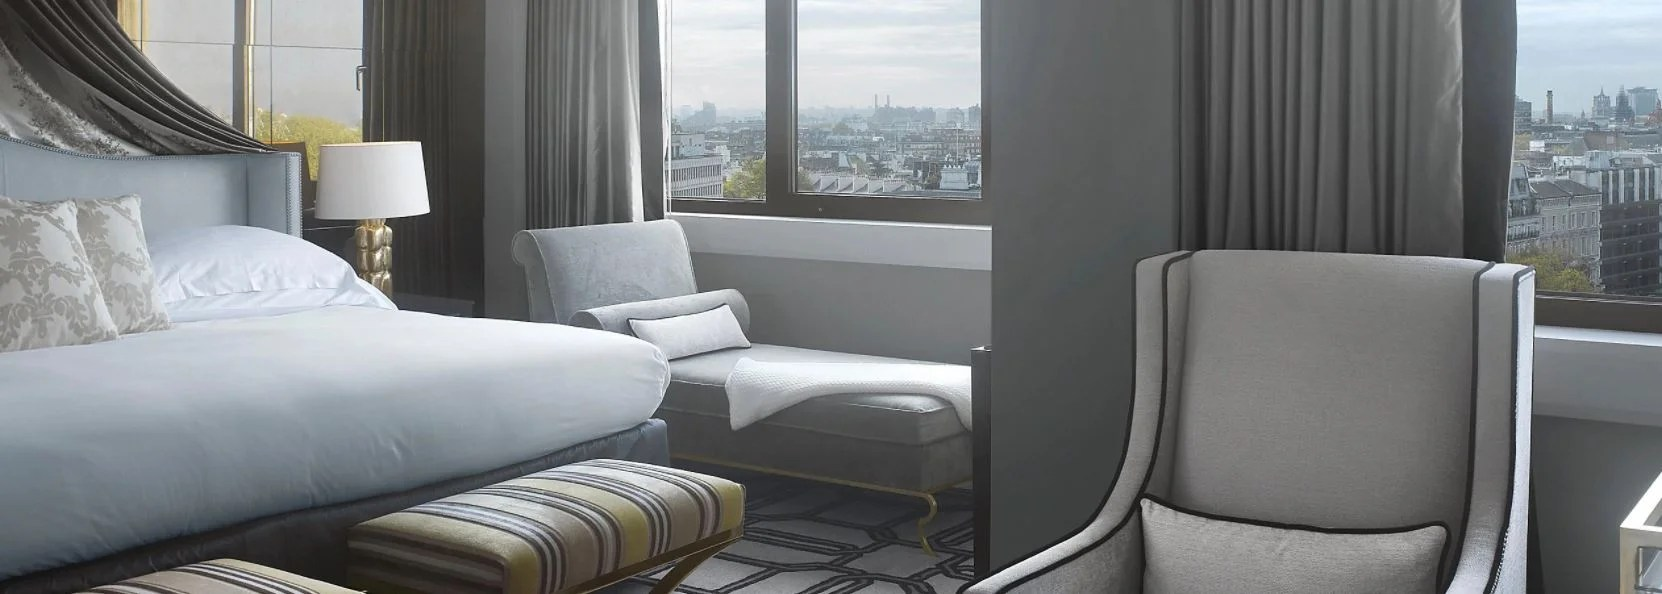 17 best hotels in London for every type of traveler